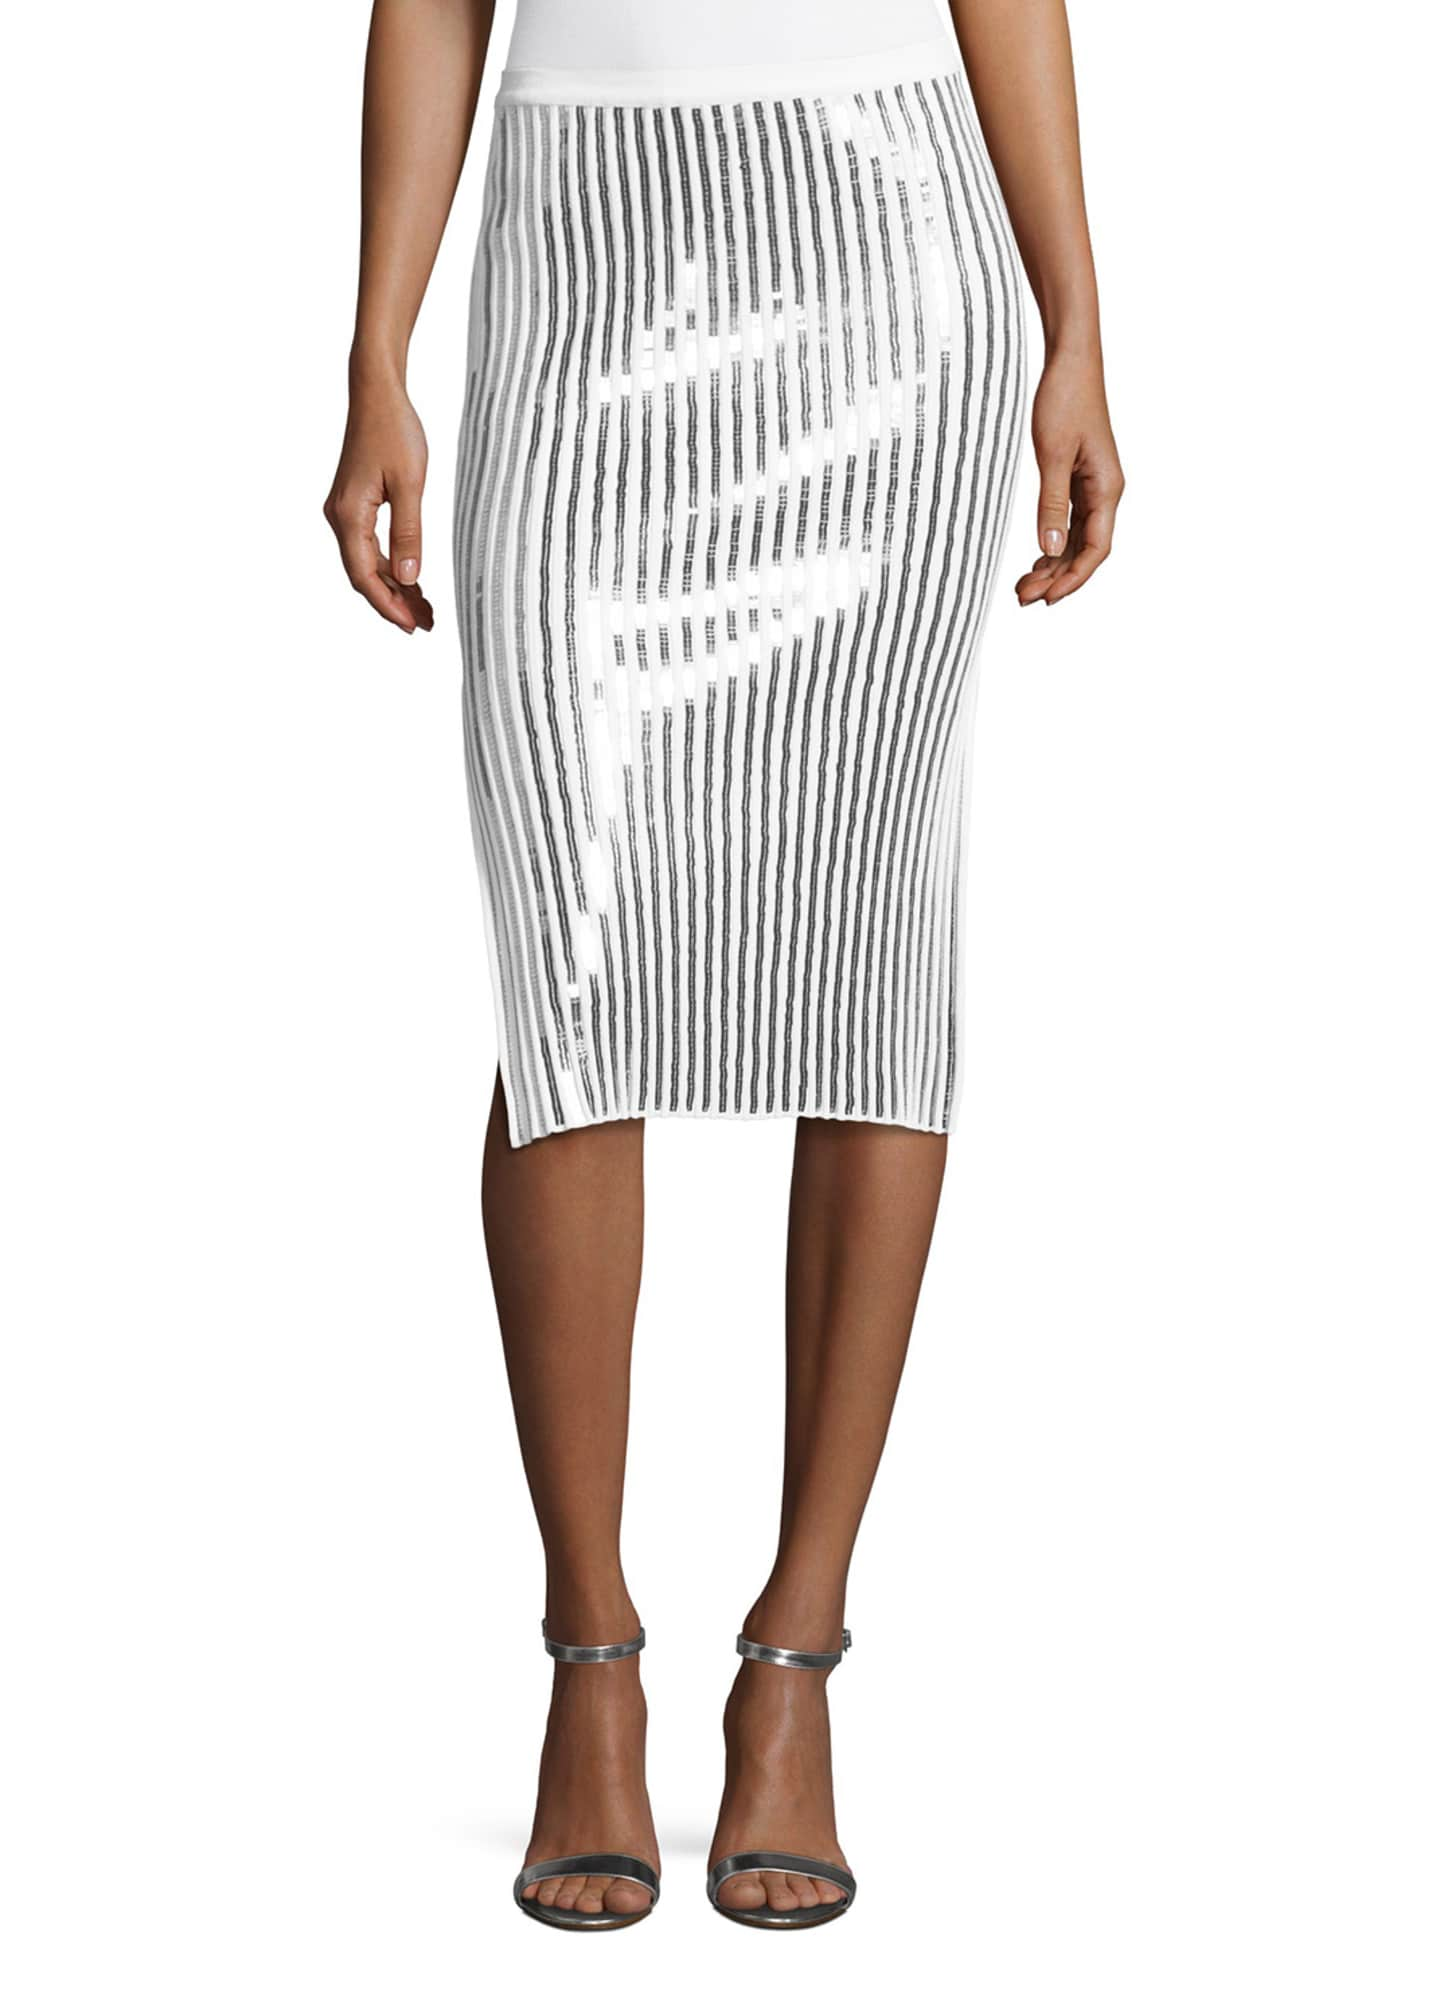 Cedric Charlier Sequin-Striped Knit Skirt